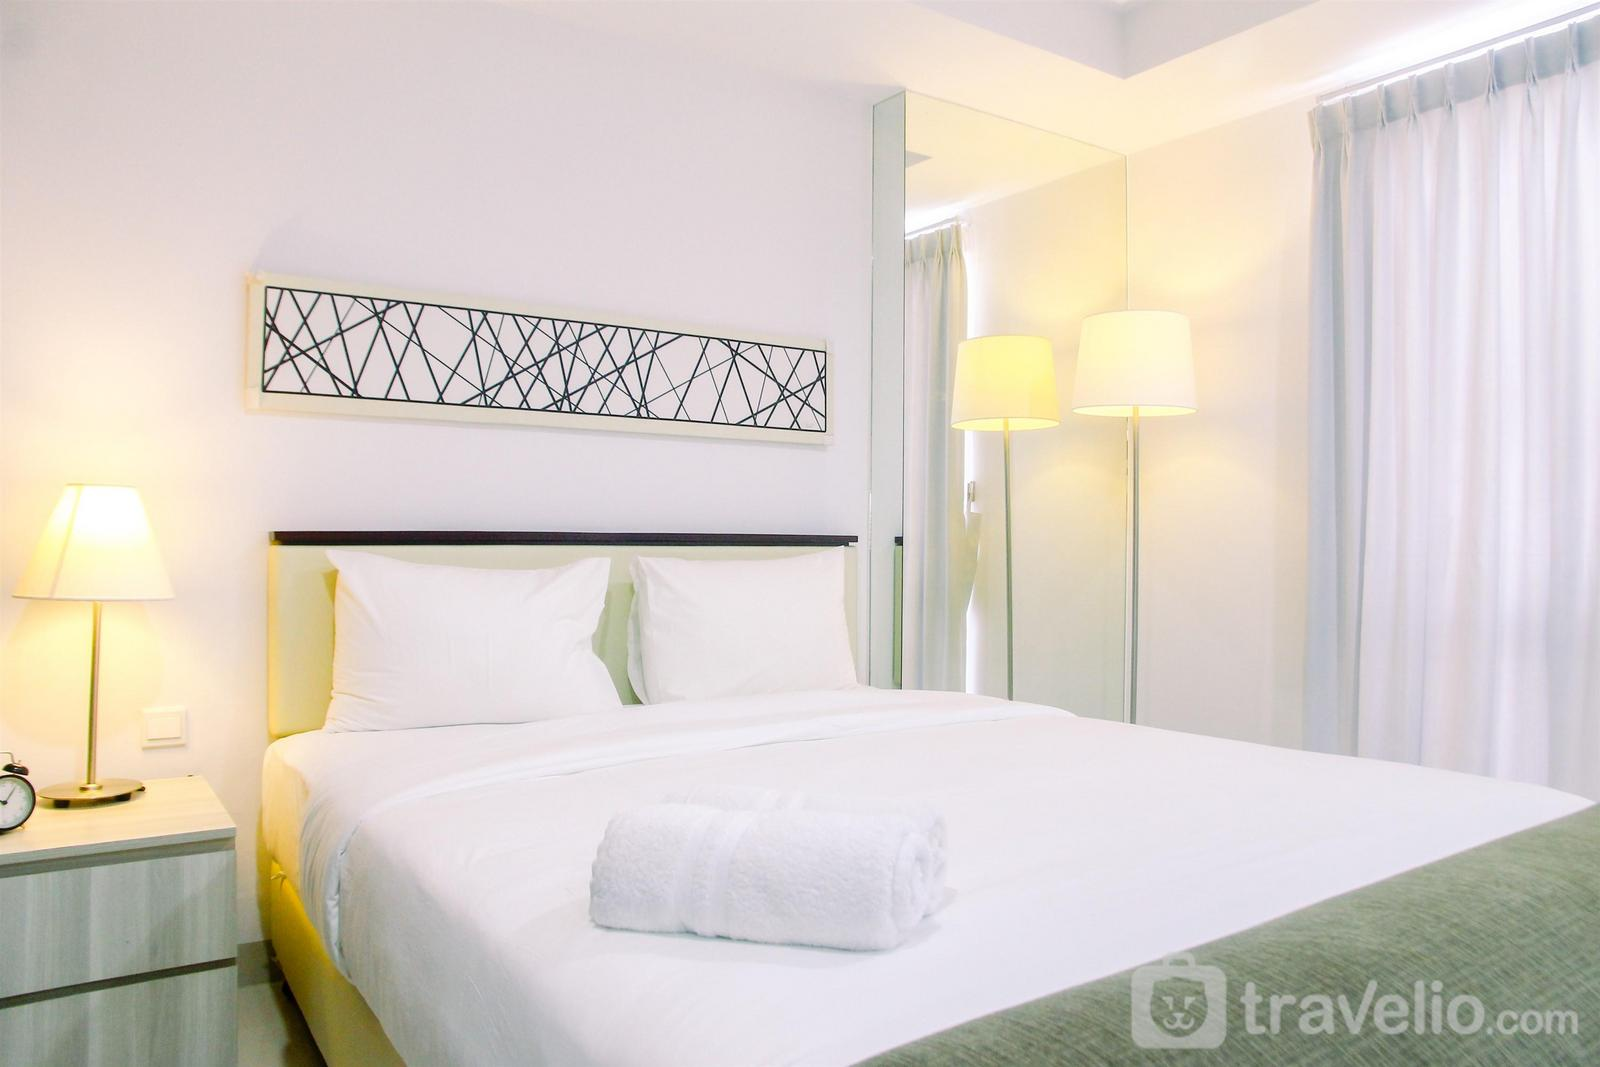 Azalea Suites - Spacious Studio Apartment @ Azalea Suites By Travelio